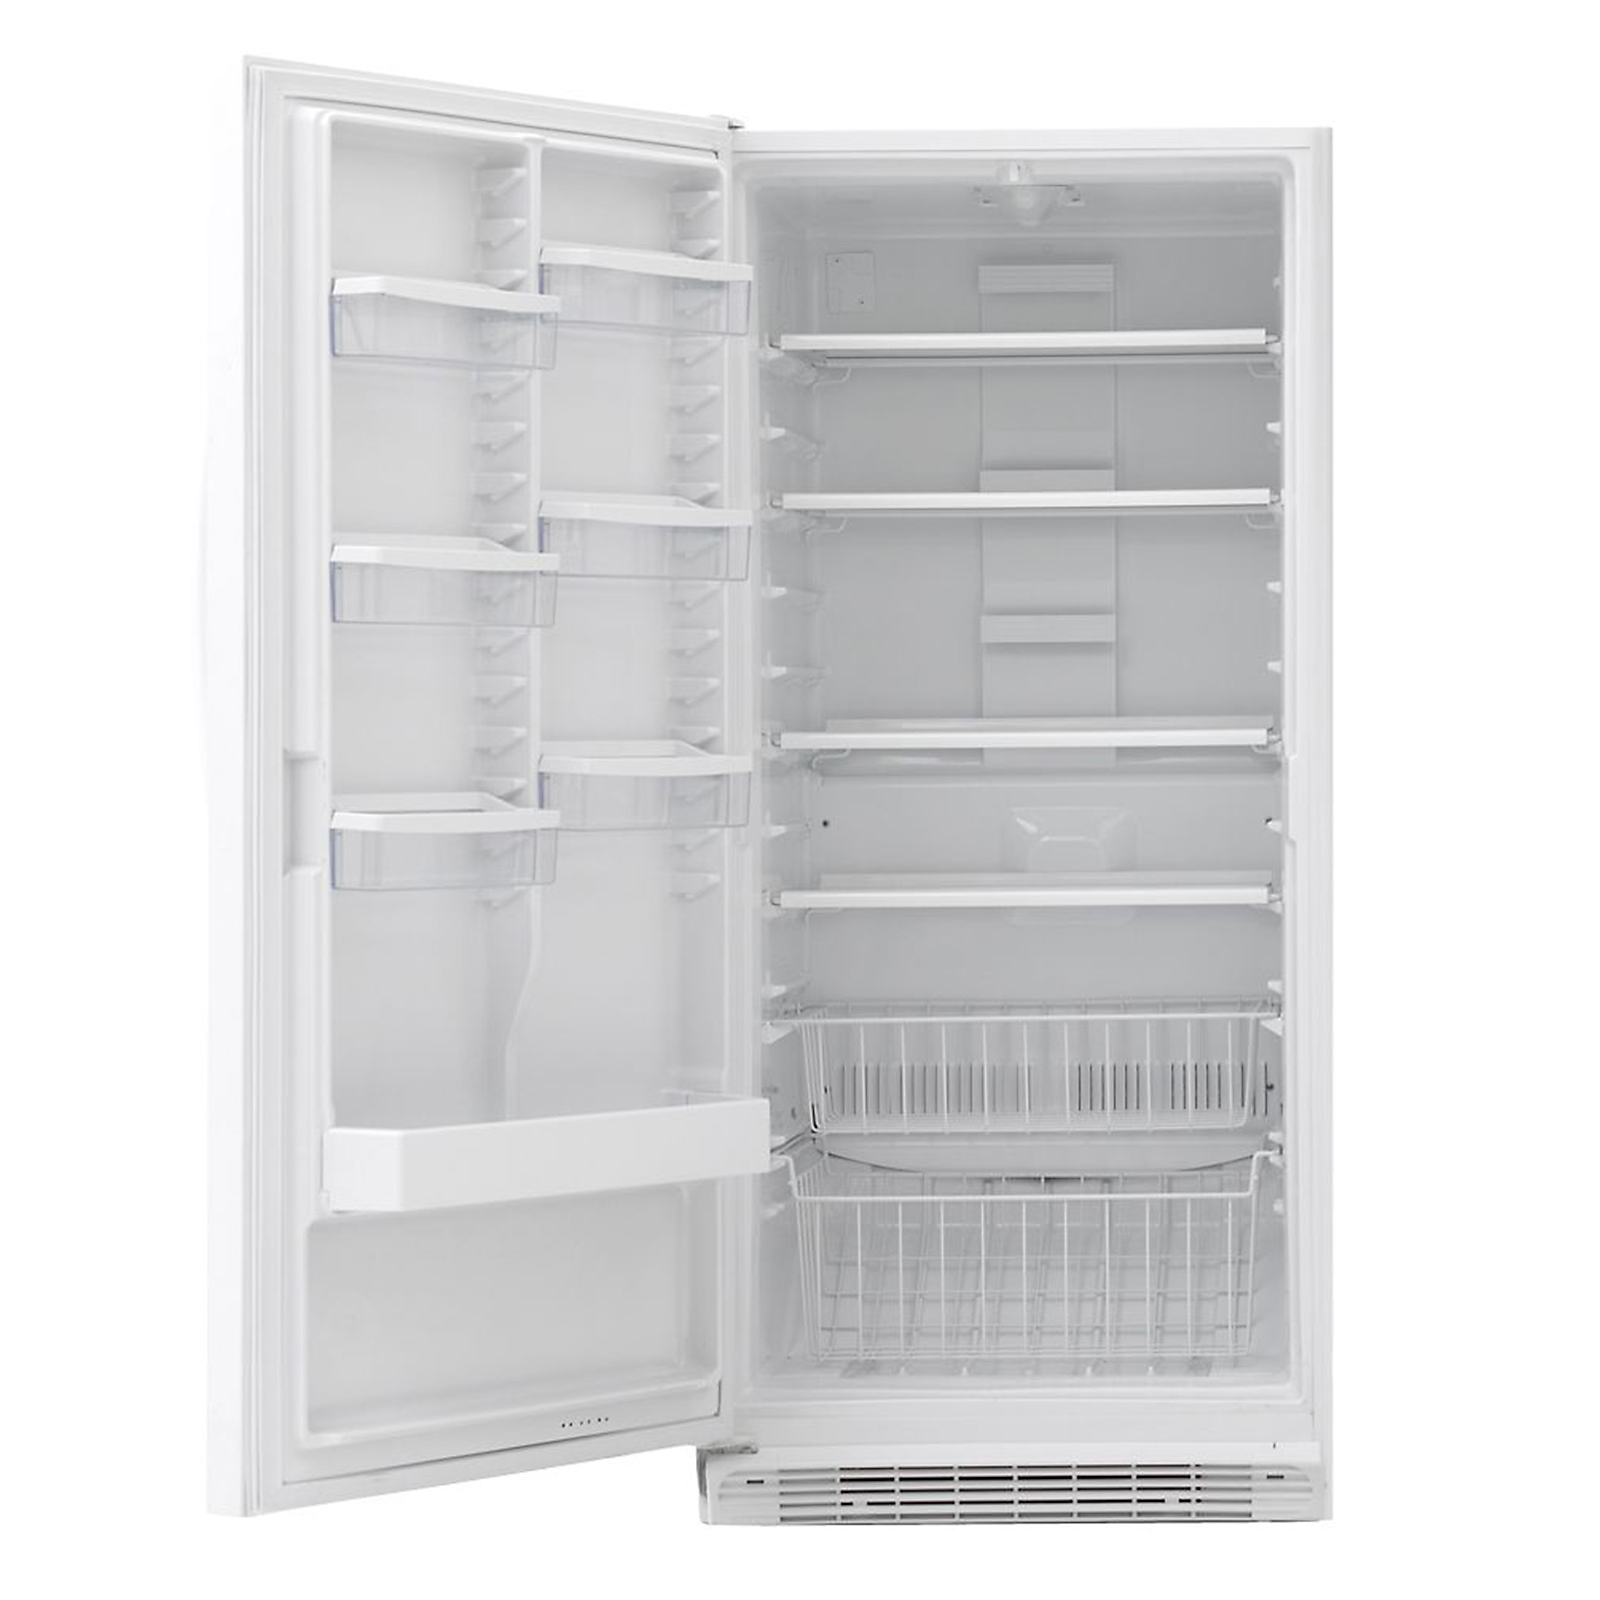 Whirlpool 17.7 cu. ft. Upright Freezer - White